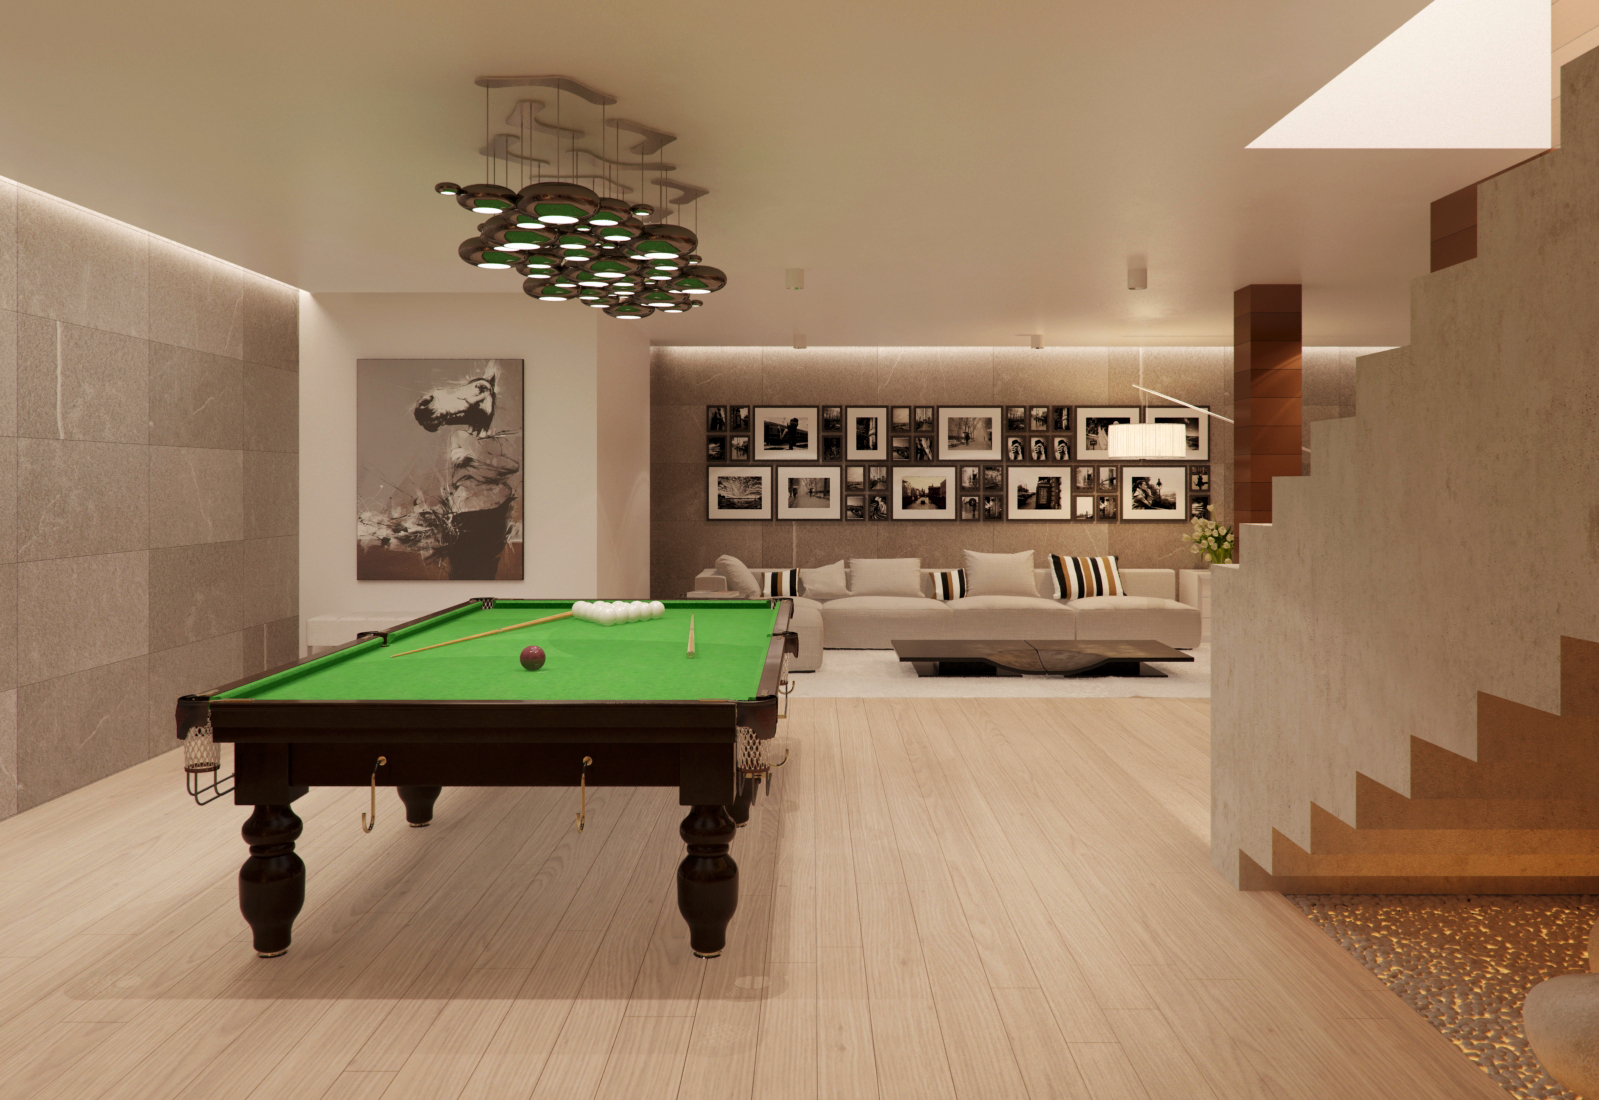 Modern house interior design ideas with elegant indoor for Swimming pool room ideas